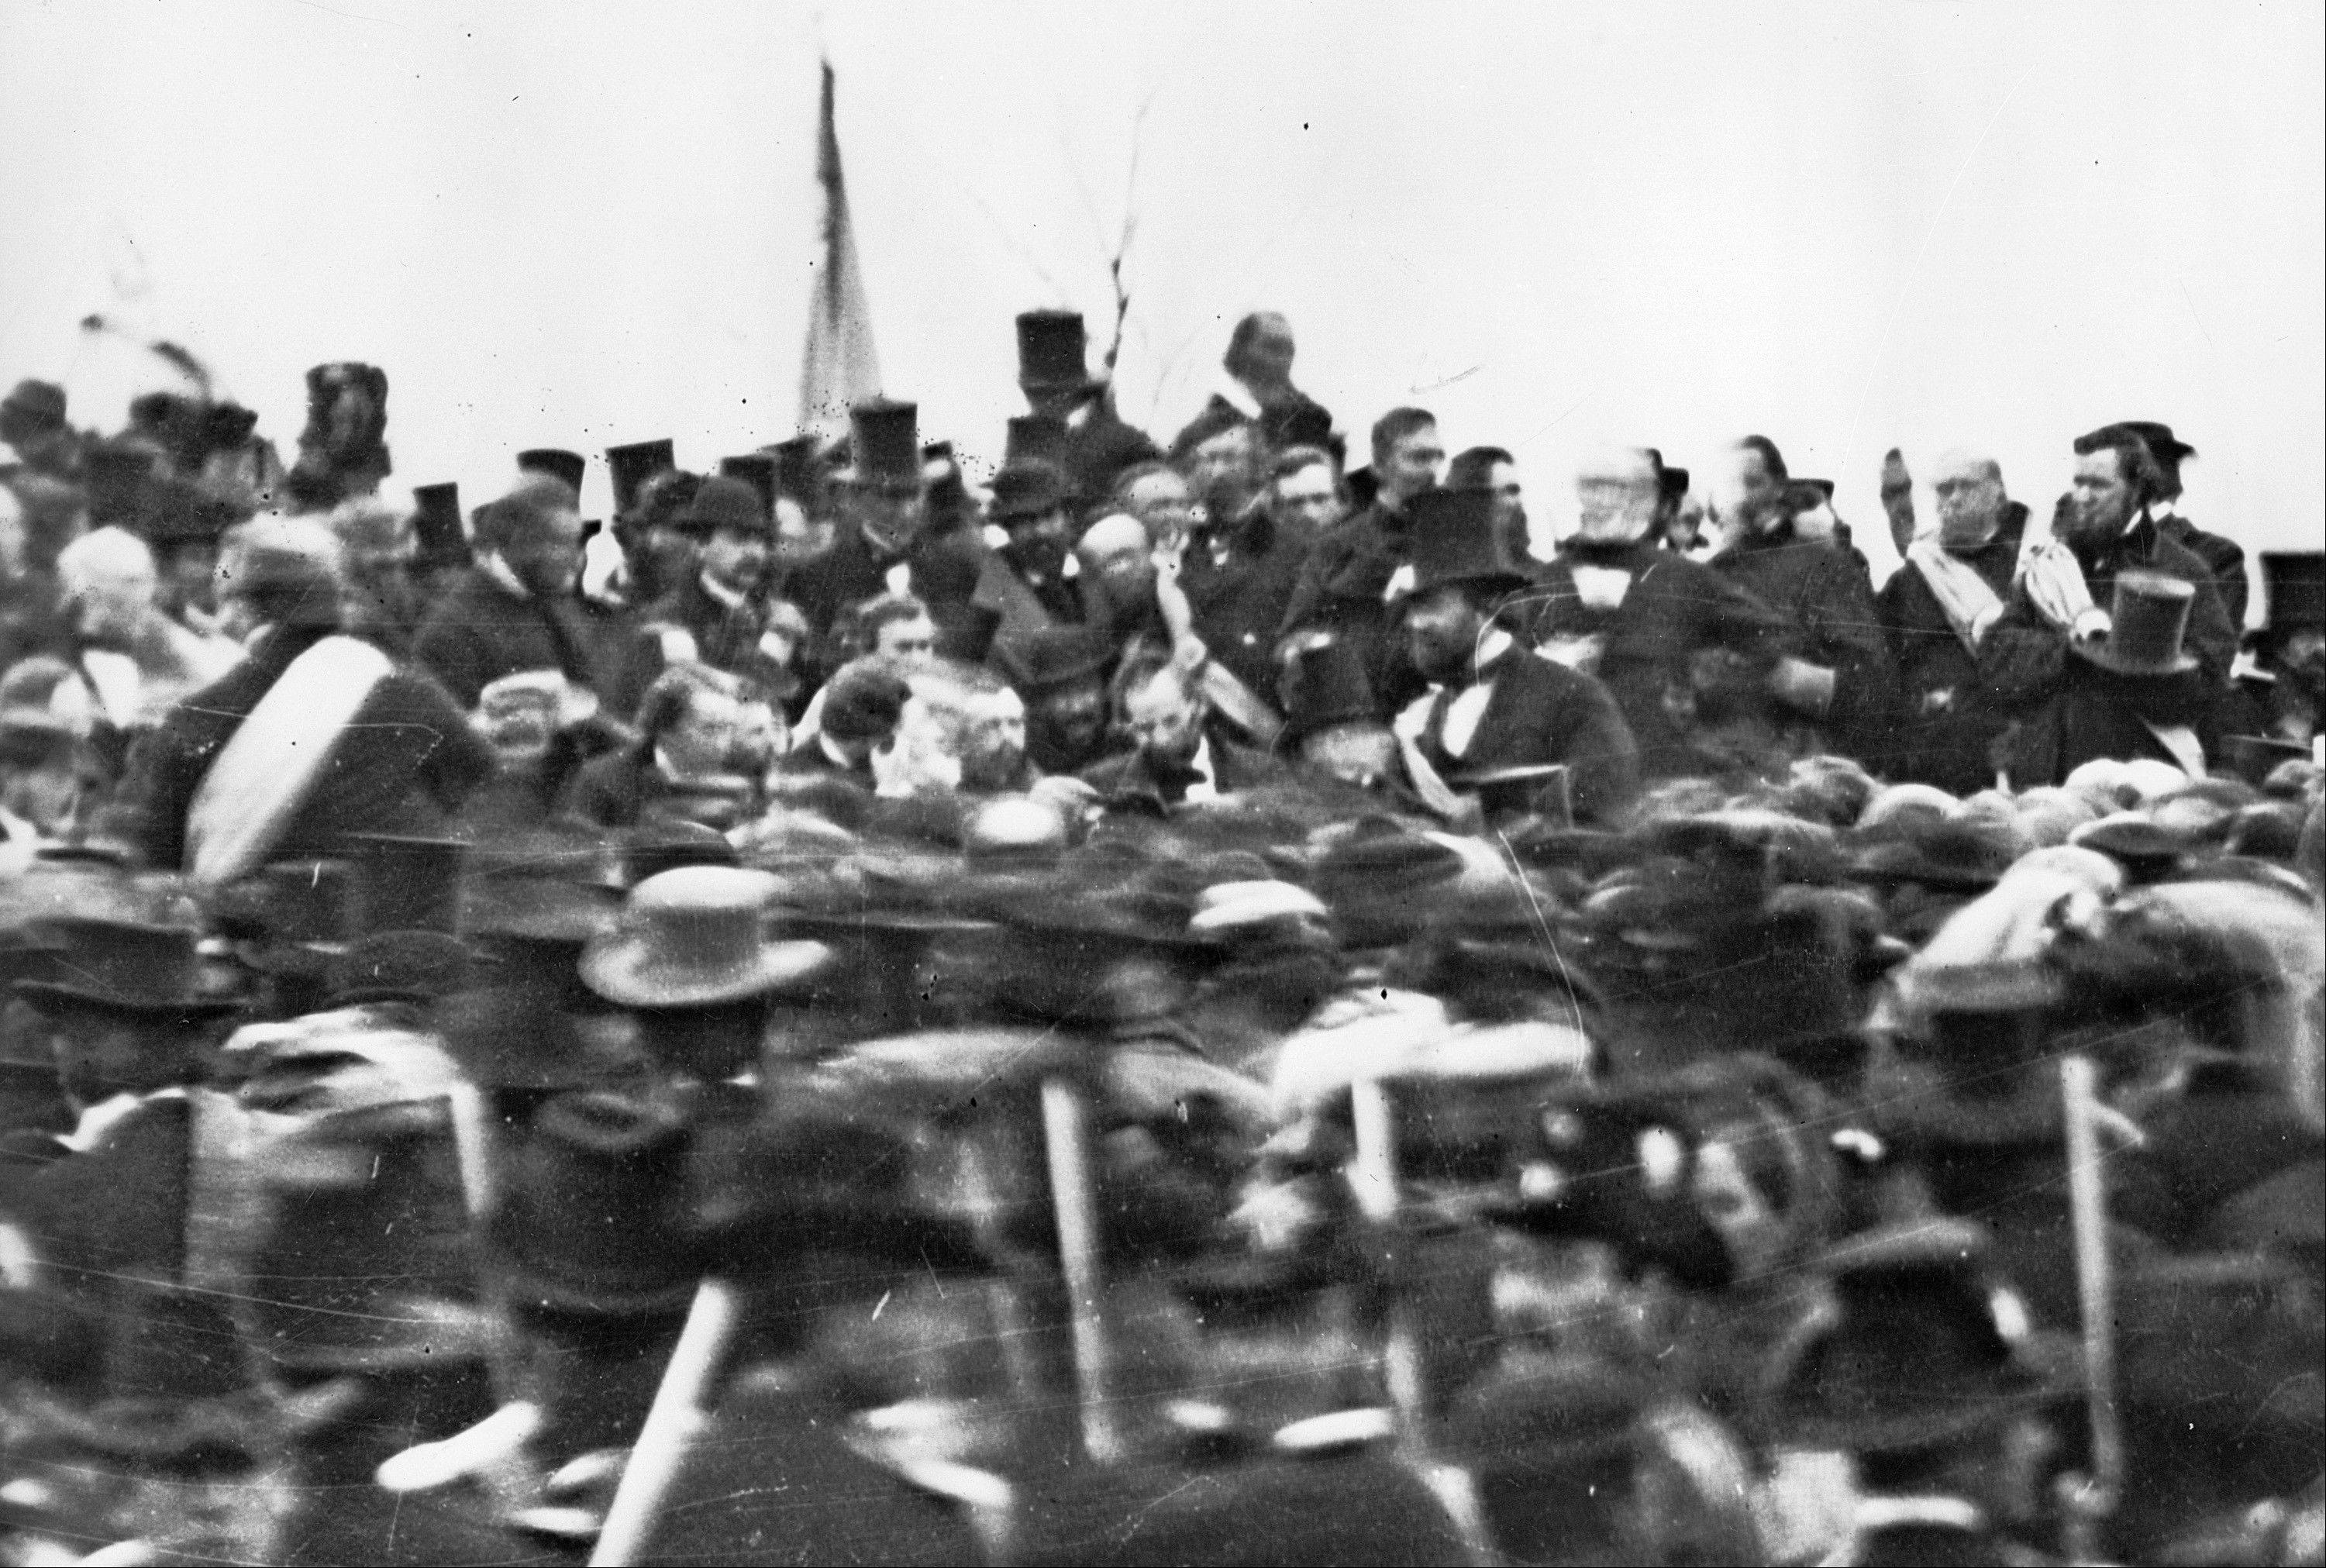 This Nov. 19, 1863, photo made available by the Library of Congress shows President Abraham Lincoln, center with no hat, surrounded by the crowd at the dedication of a portion of the battlefield at Gettysburg, Pa. as a national cemetery.